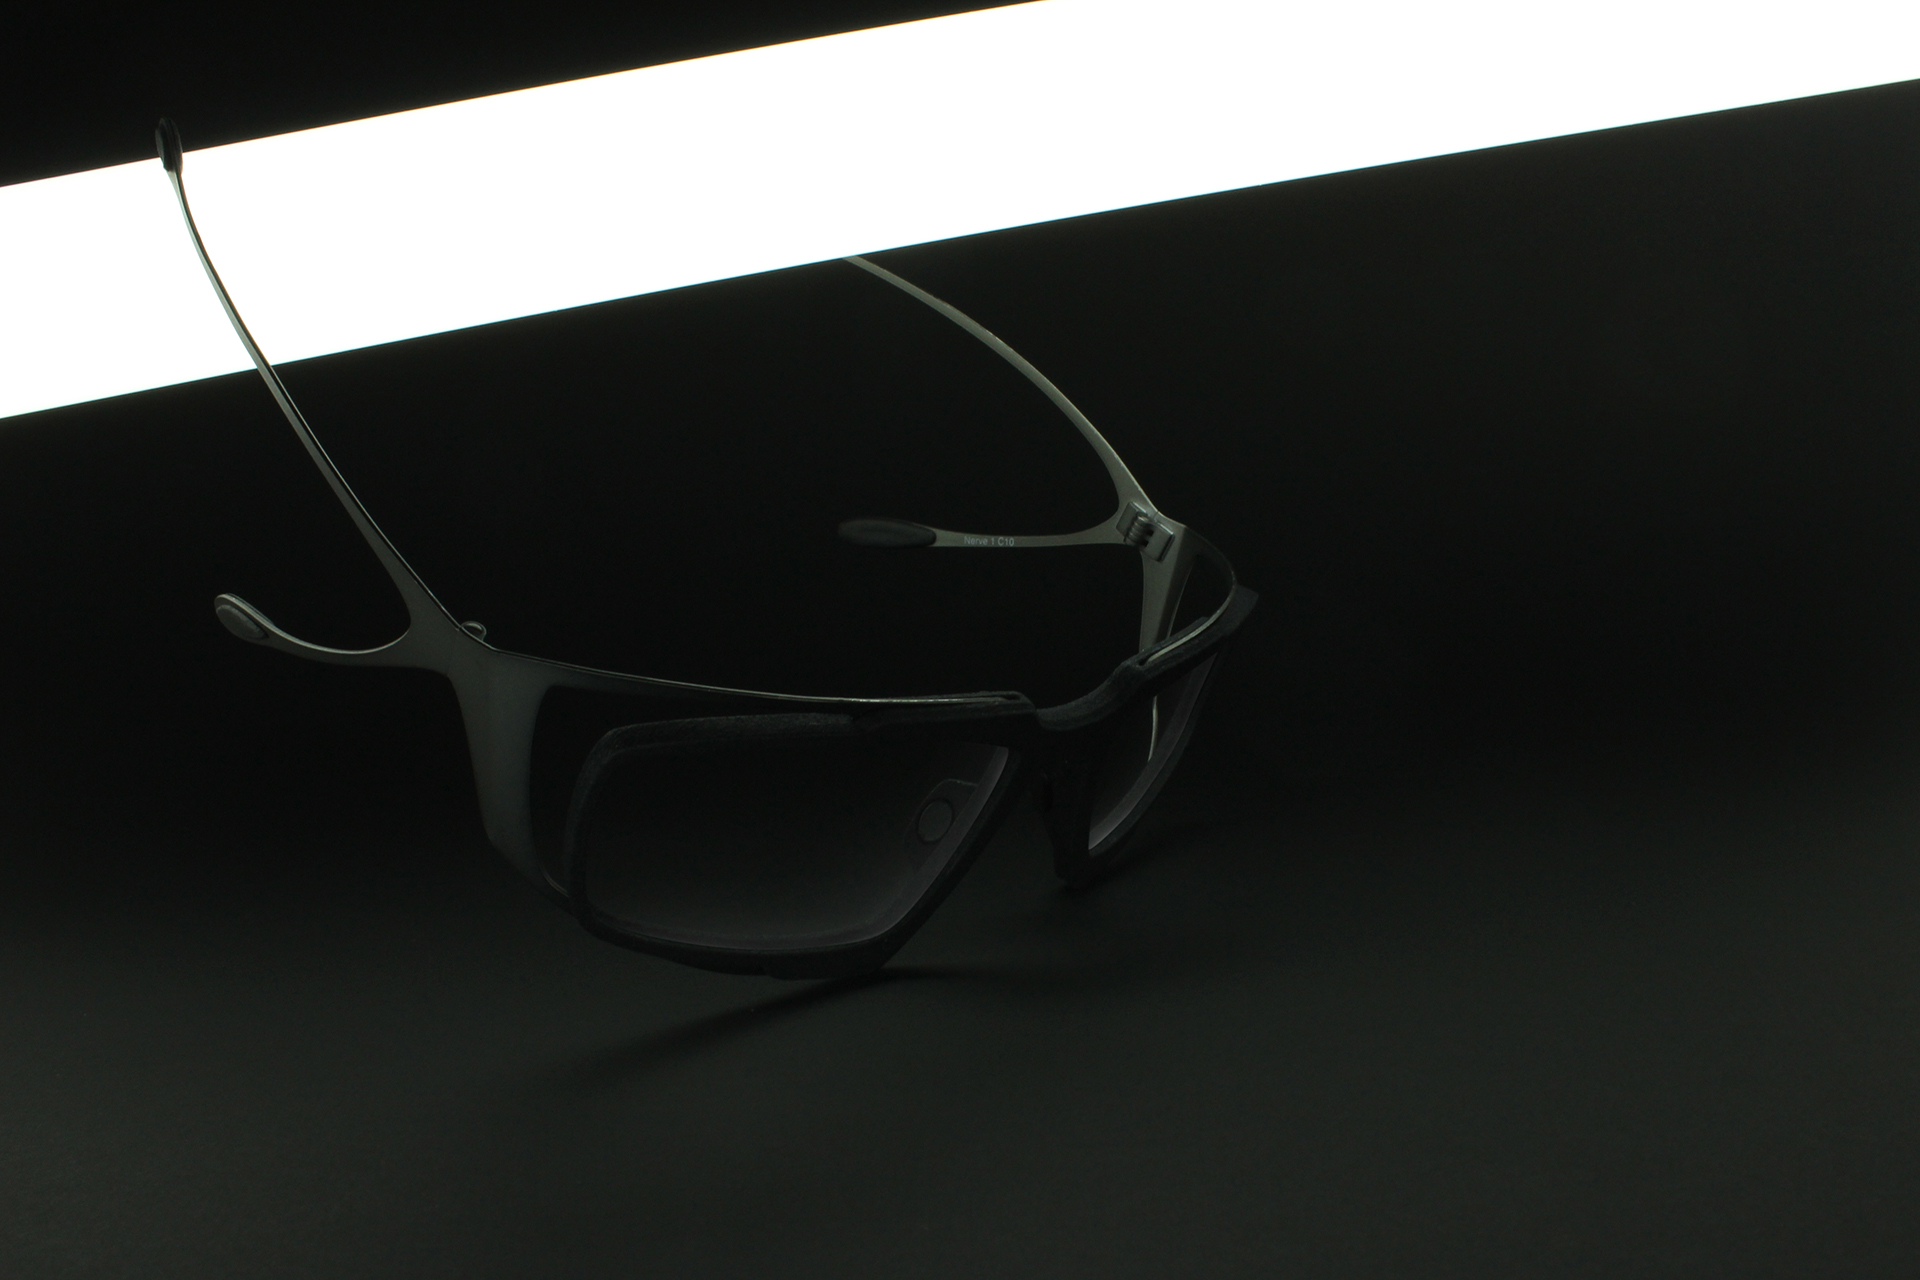 6f1af0326e Parasite Eyewear - the revolutionary french eyewear design company ...